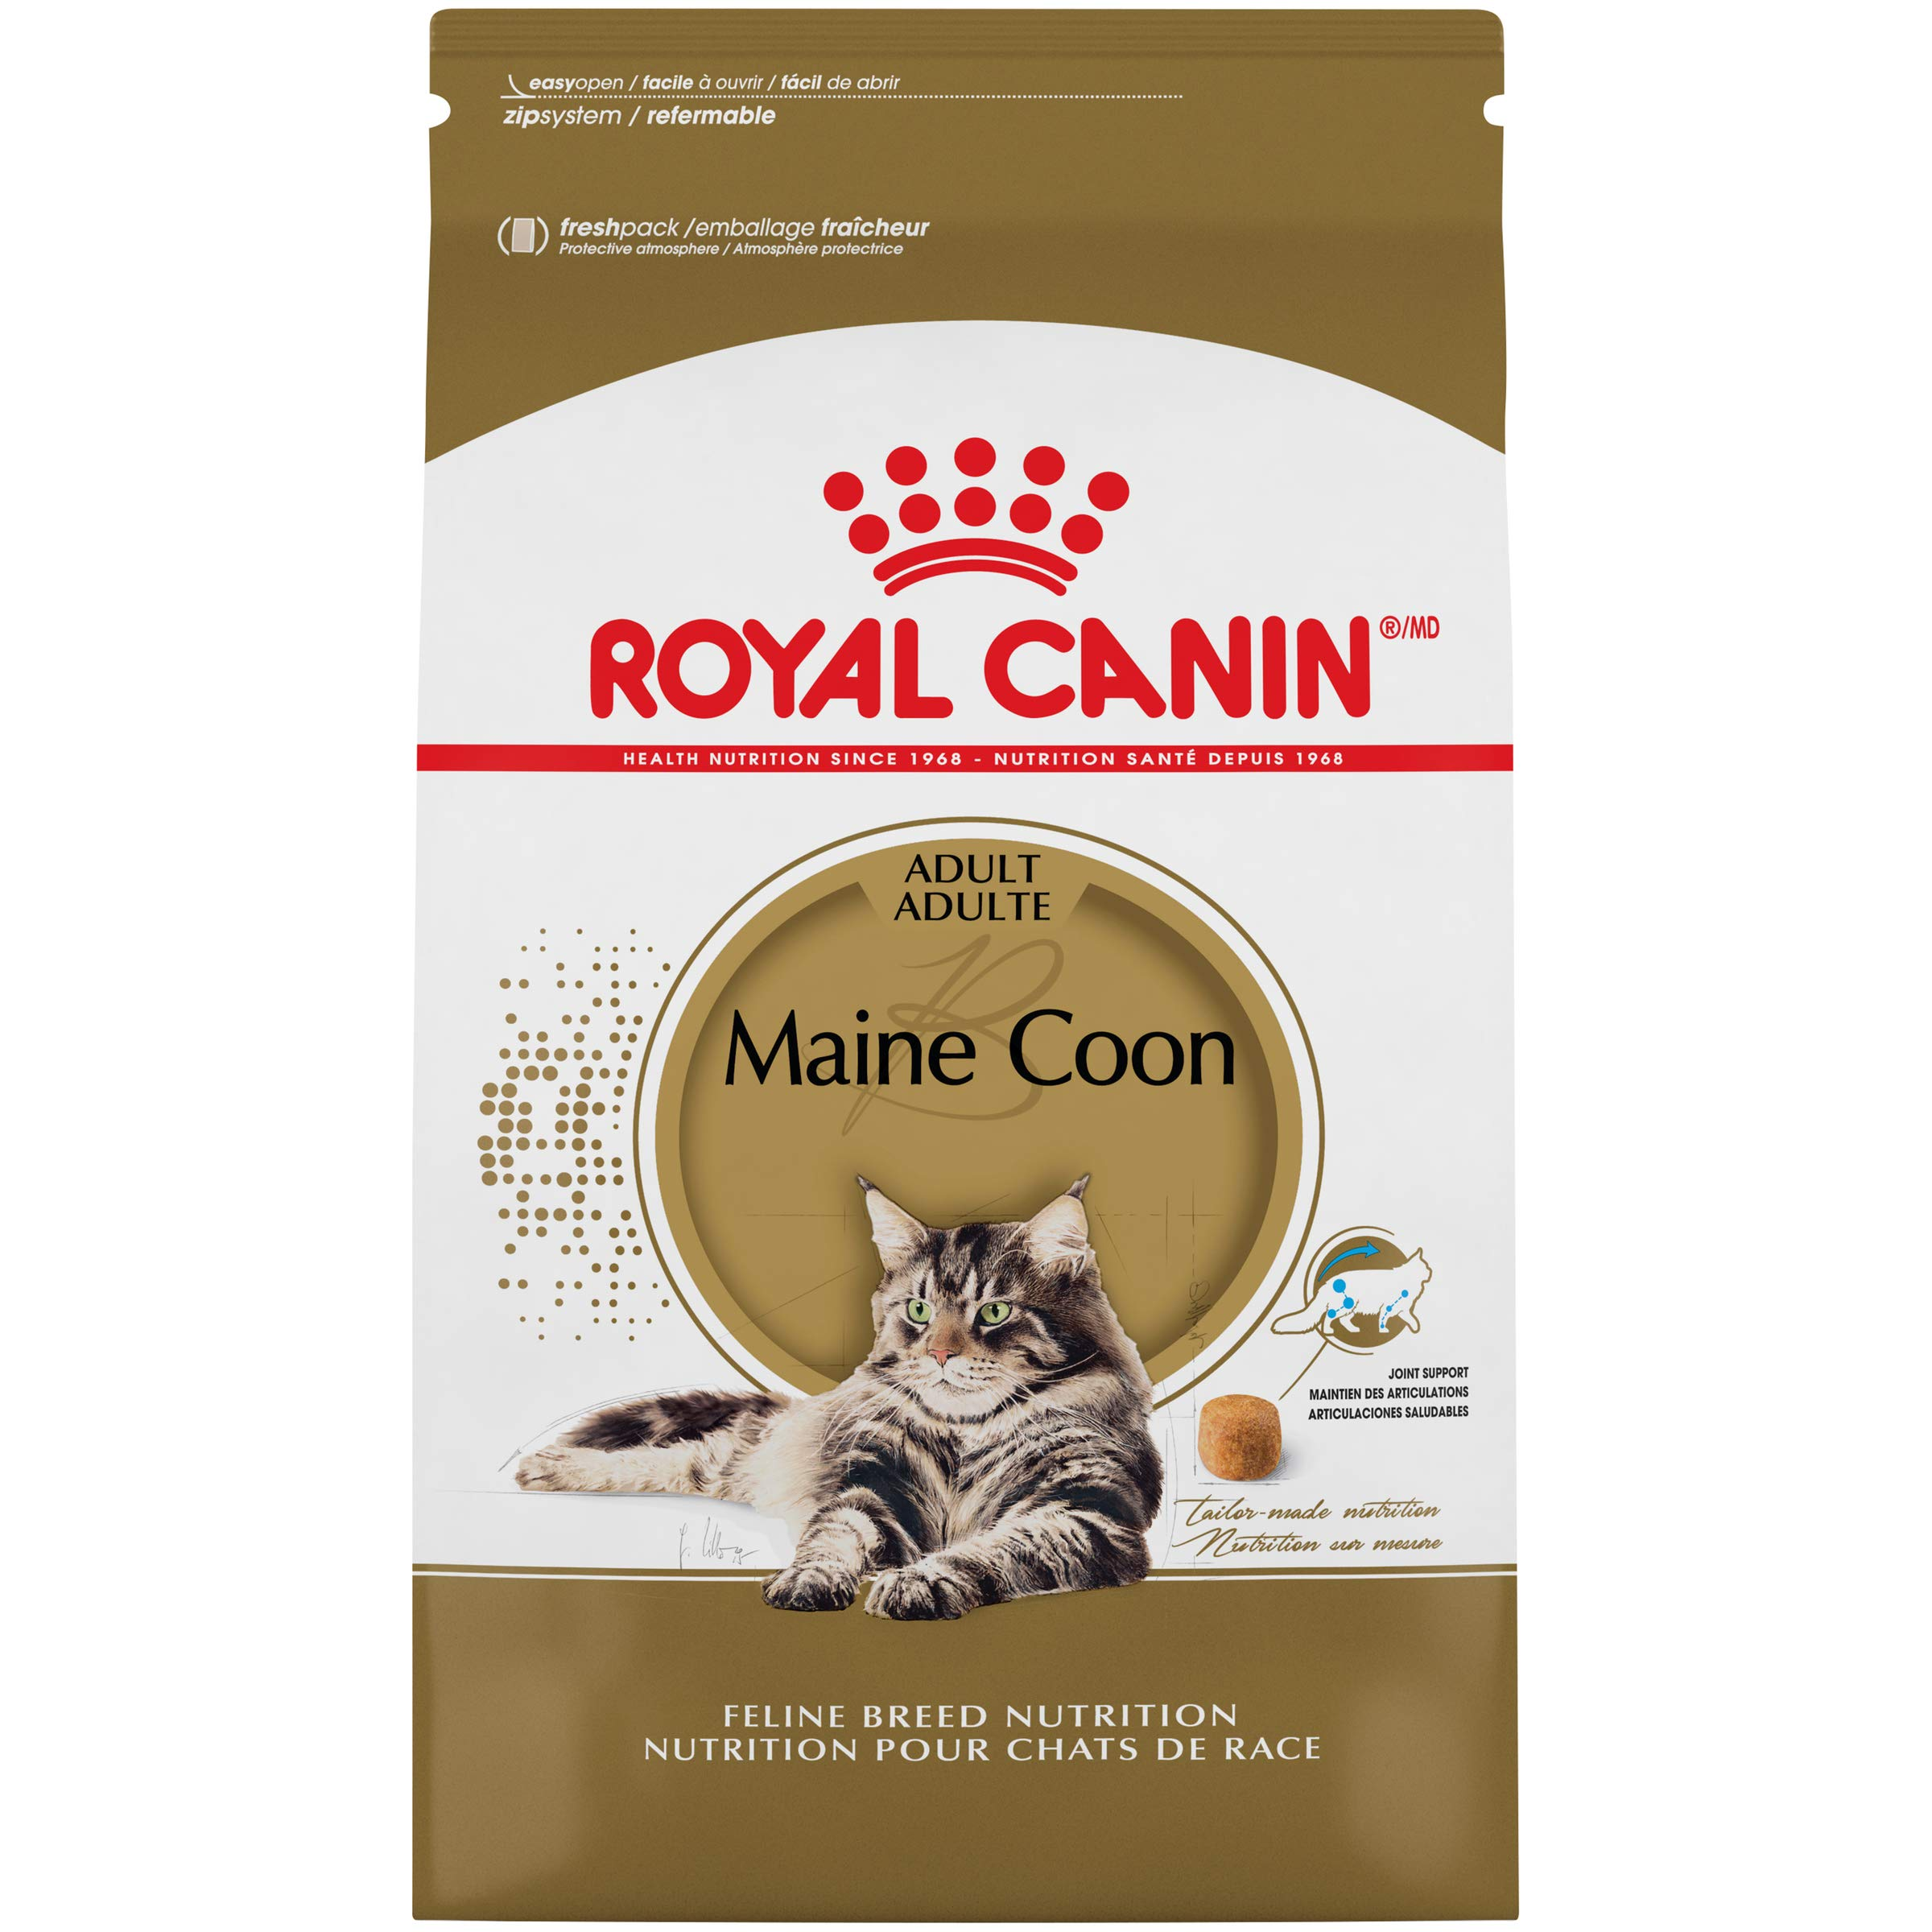 Royal Canin Maine Coon Breed Adult Dry Cat Food, 14 lb. by Royal Canin